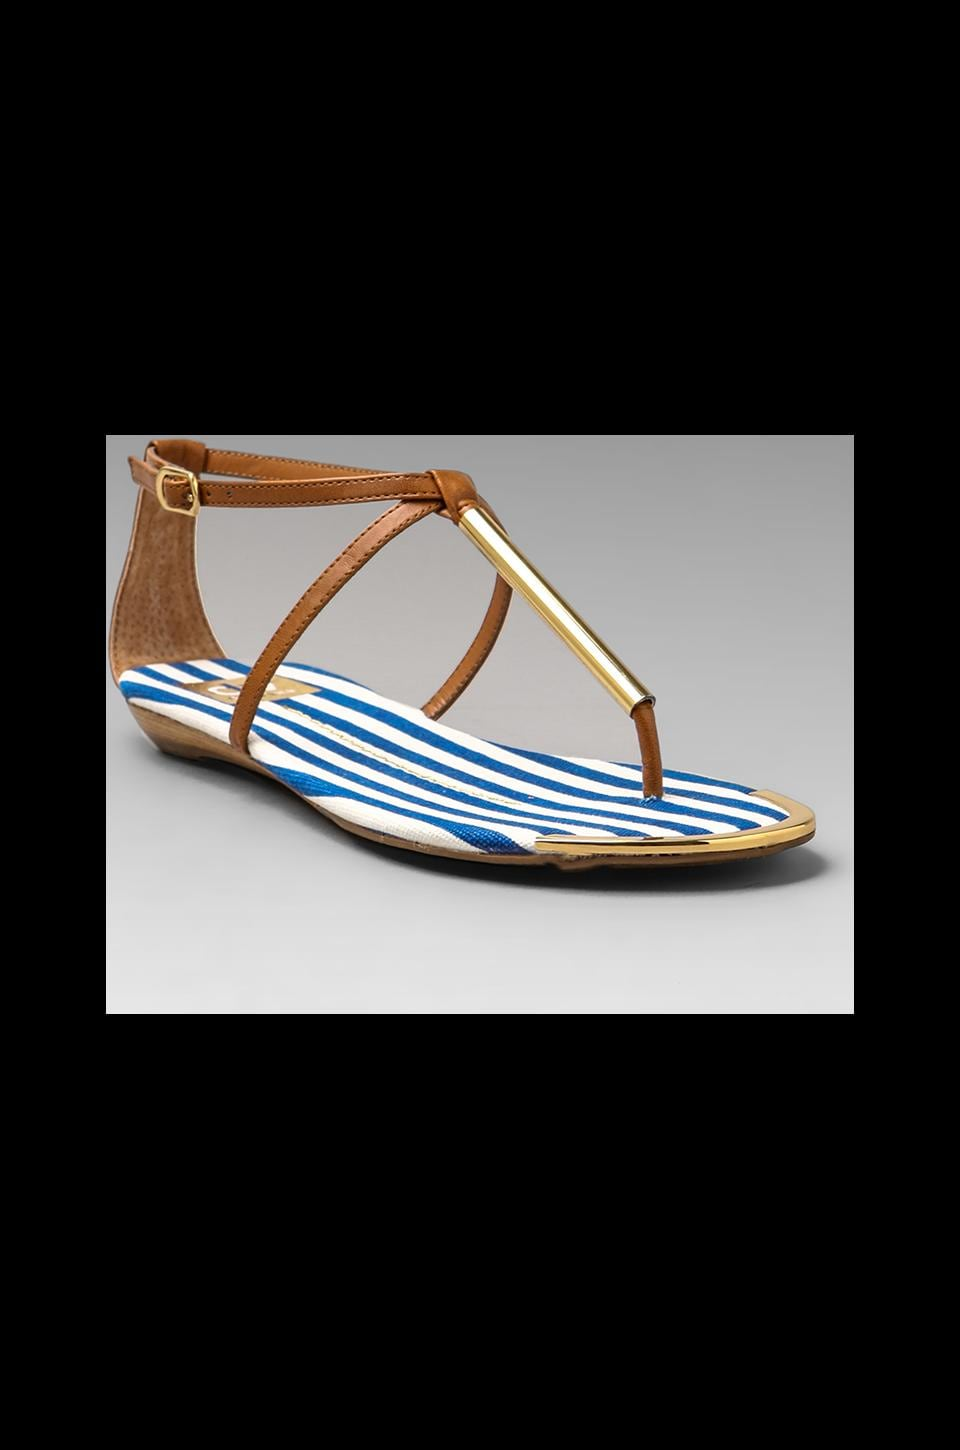 Dolce Vita Archer Sandal in Blue Stripe